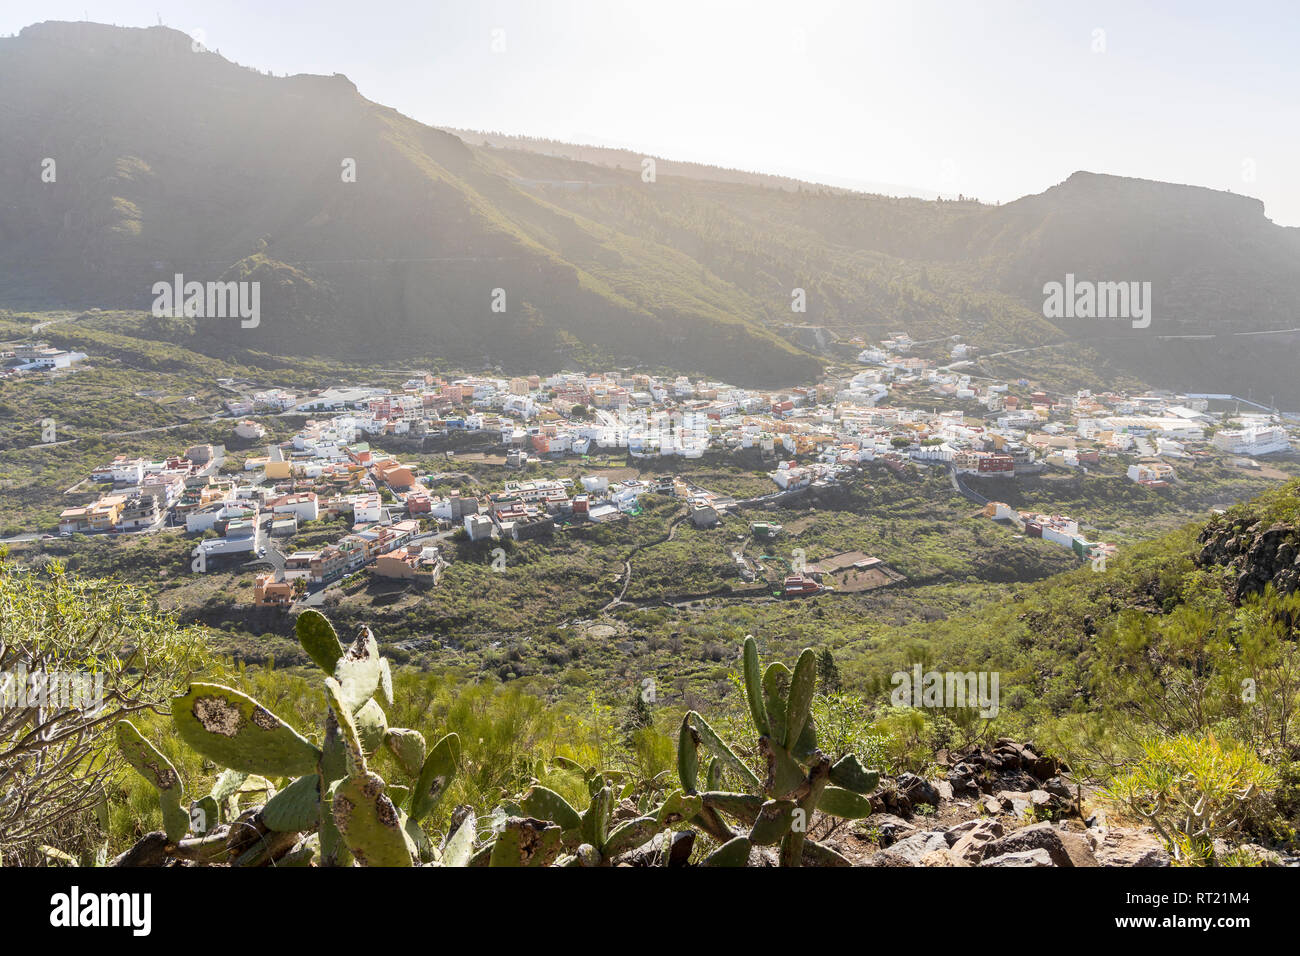 Aerial view over the village of Tamaimo with haze in the air from a calima bringing dust in from the Sahara, Santiago del Teide, Tenerife, Canary Isla - Stock Image